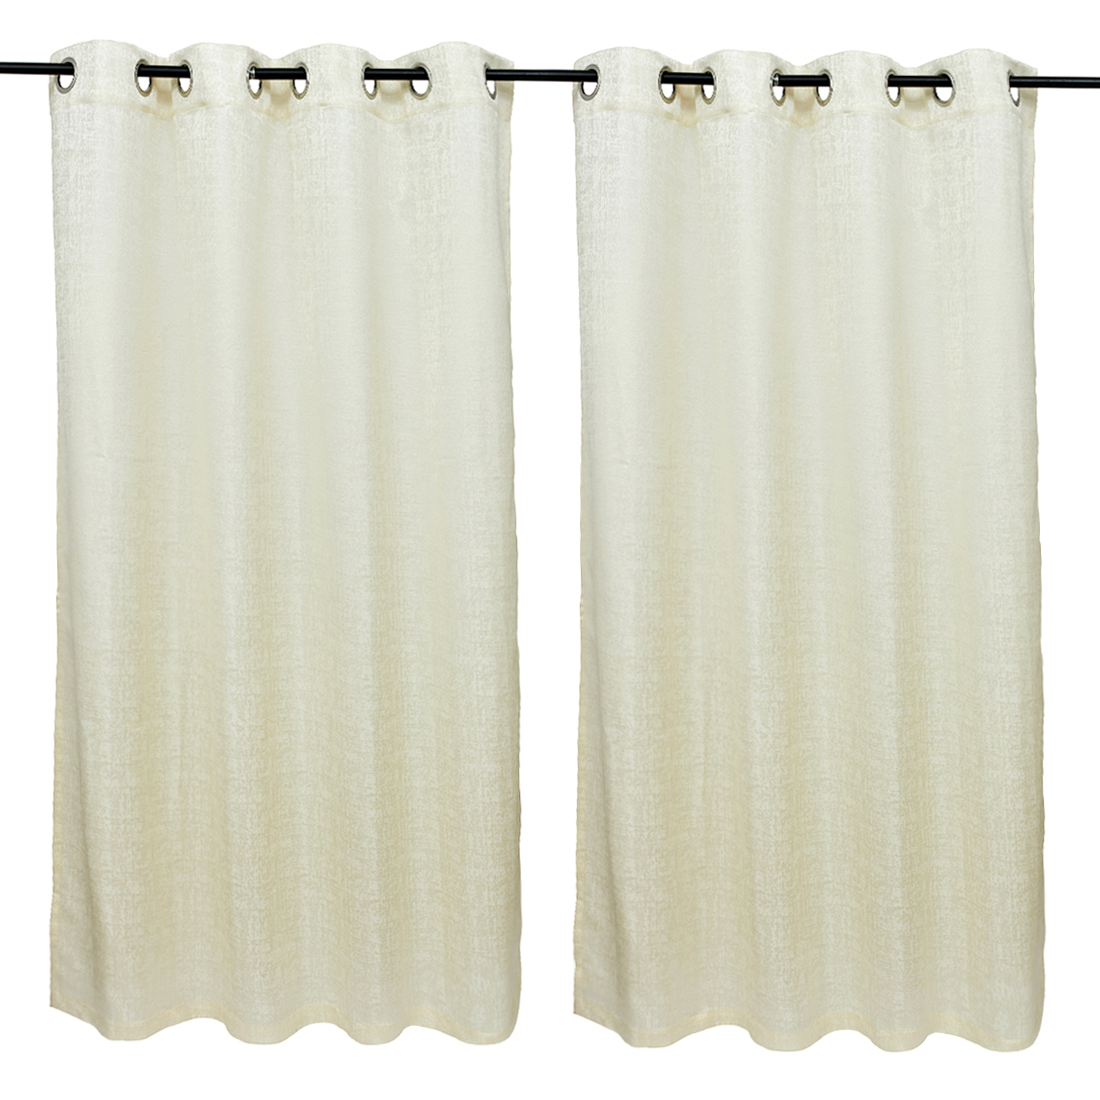 Nora Solid set of 2 Polyester Window Curtains in White Colour by Living Essence